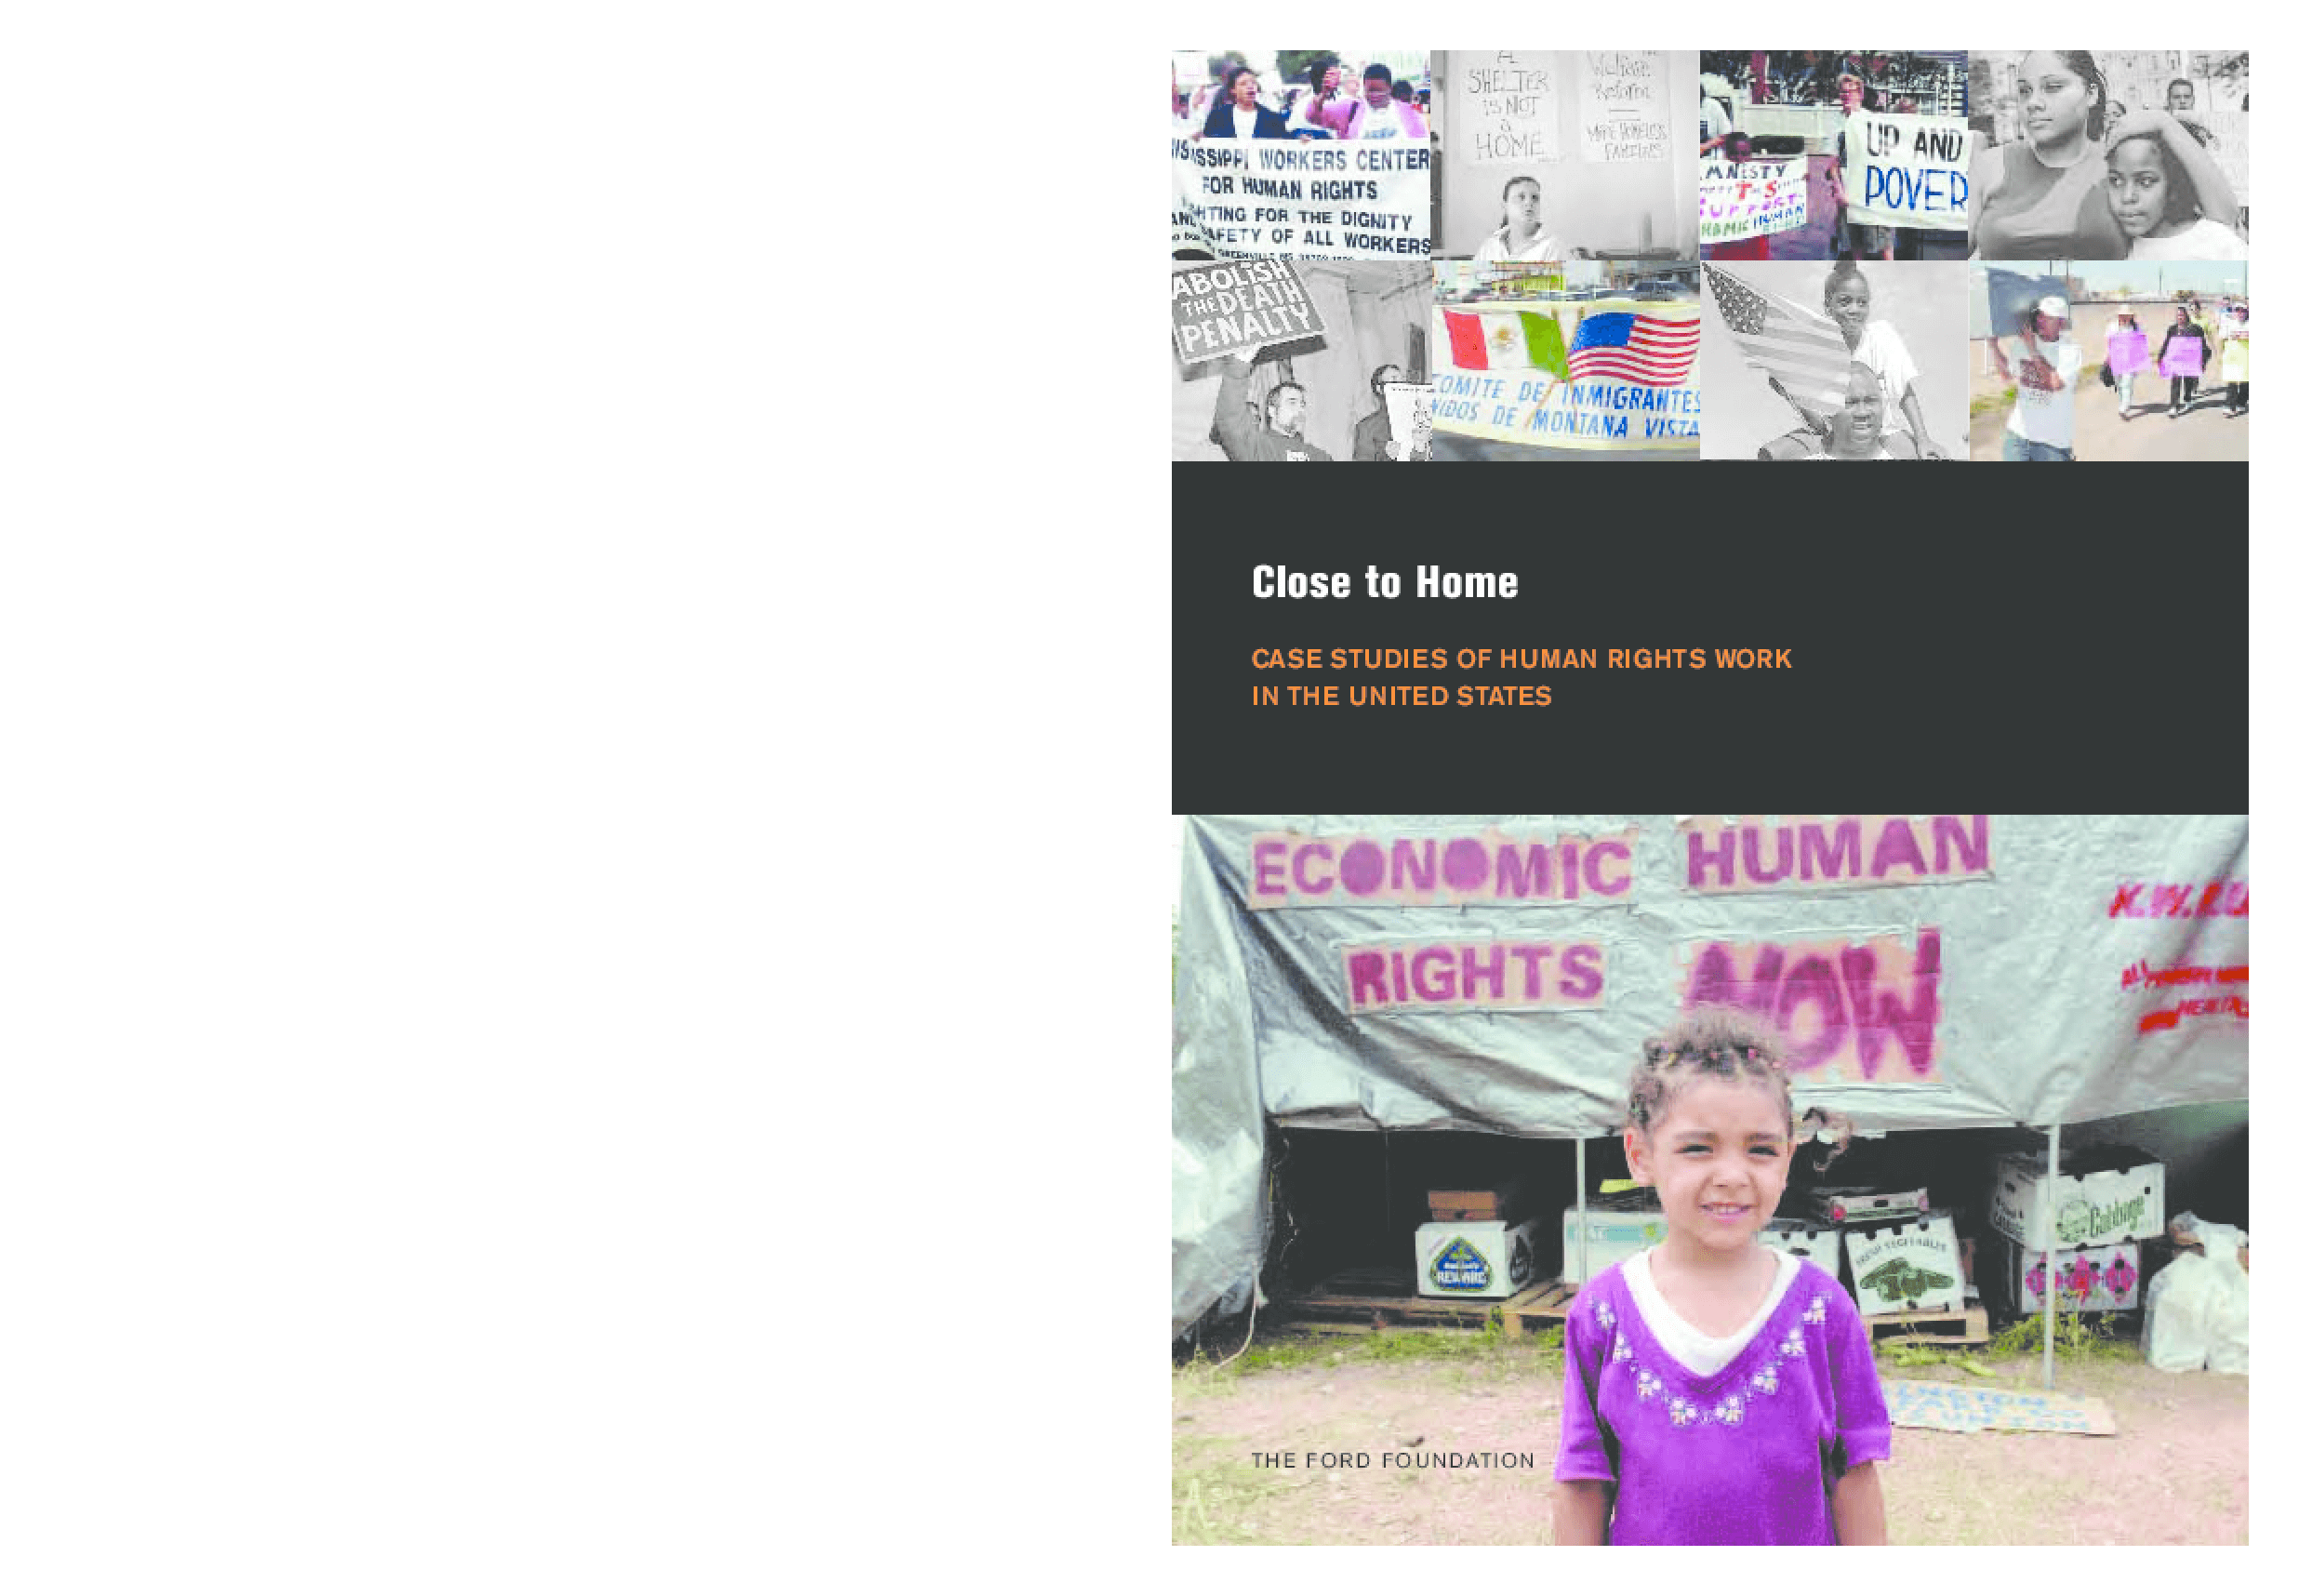 Close to Home: Case Studies of Human Rights Work in the United States